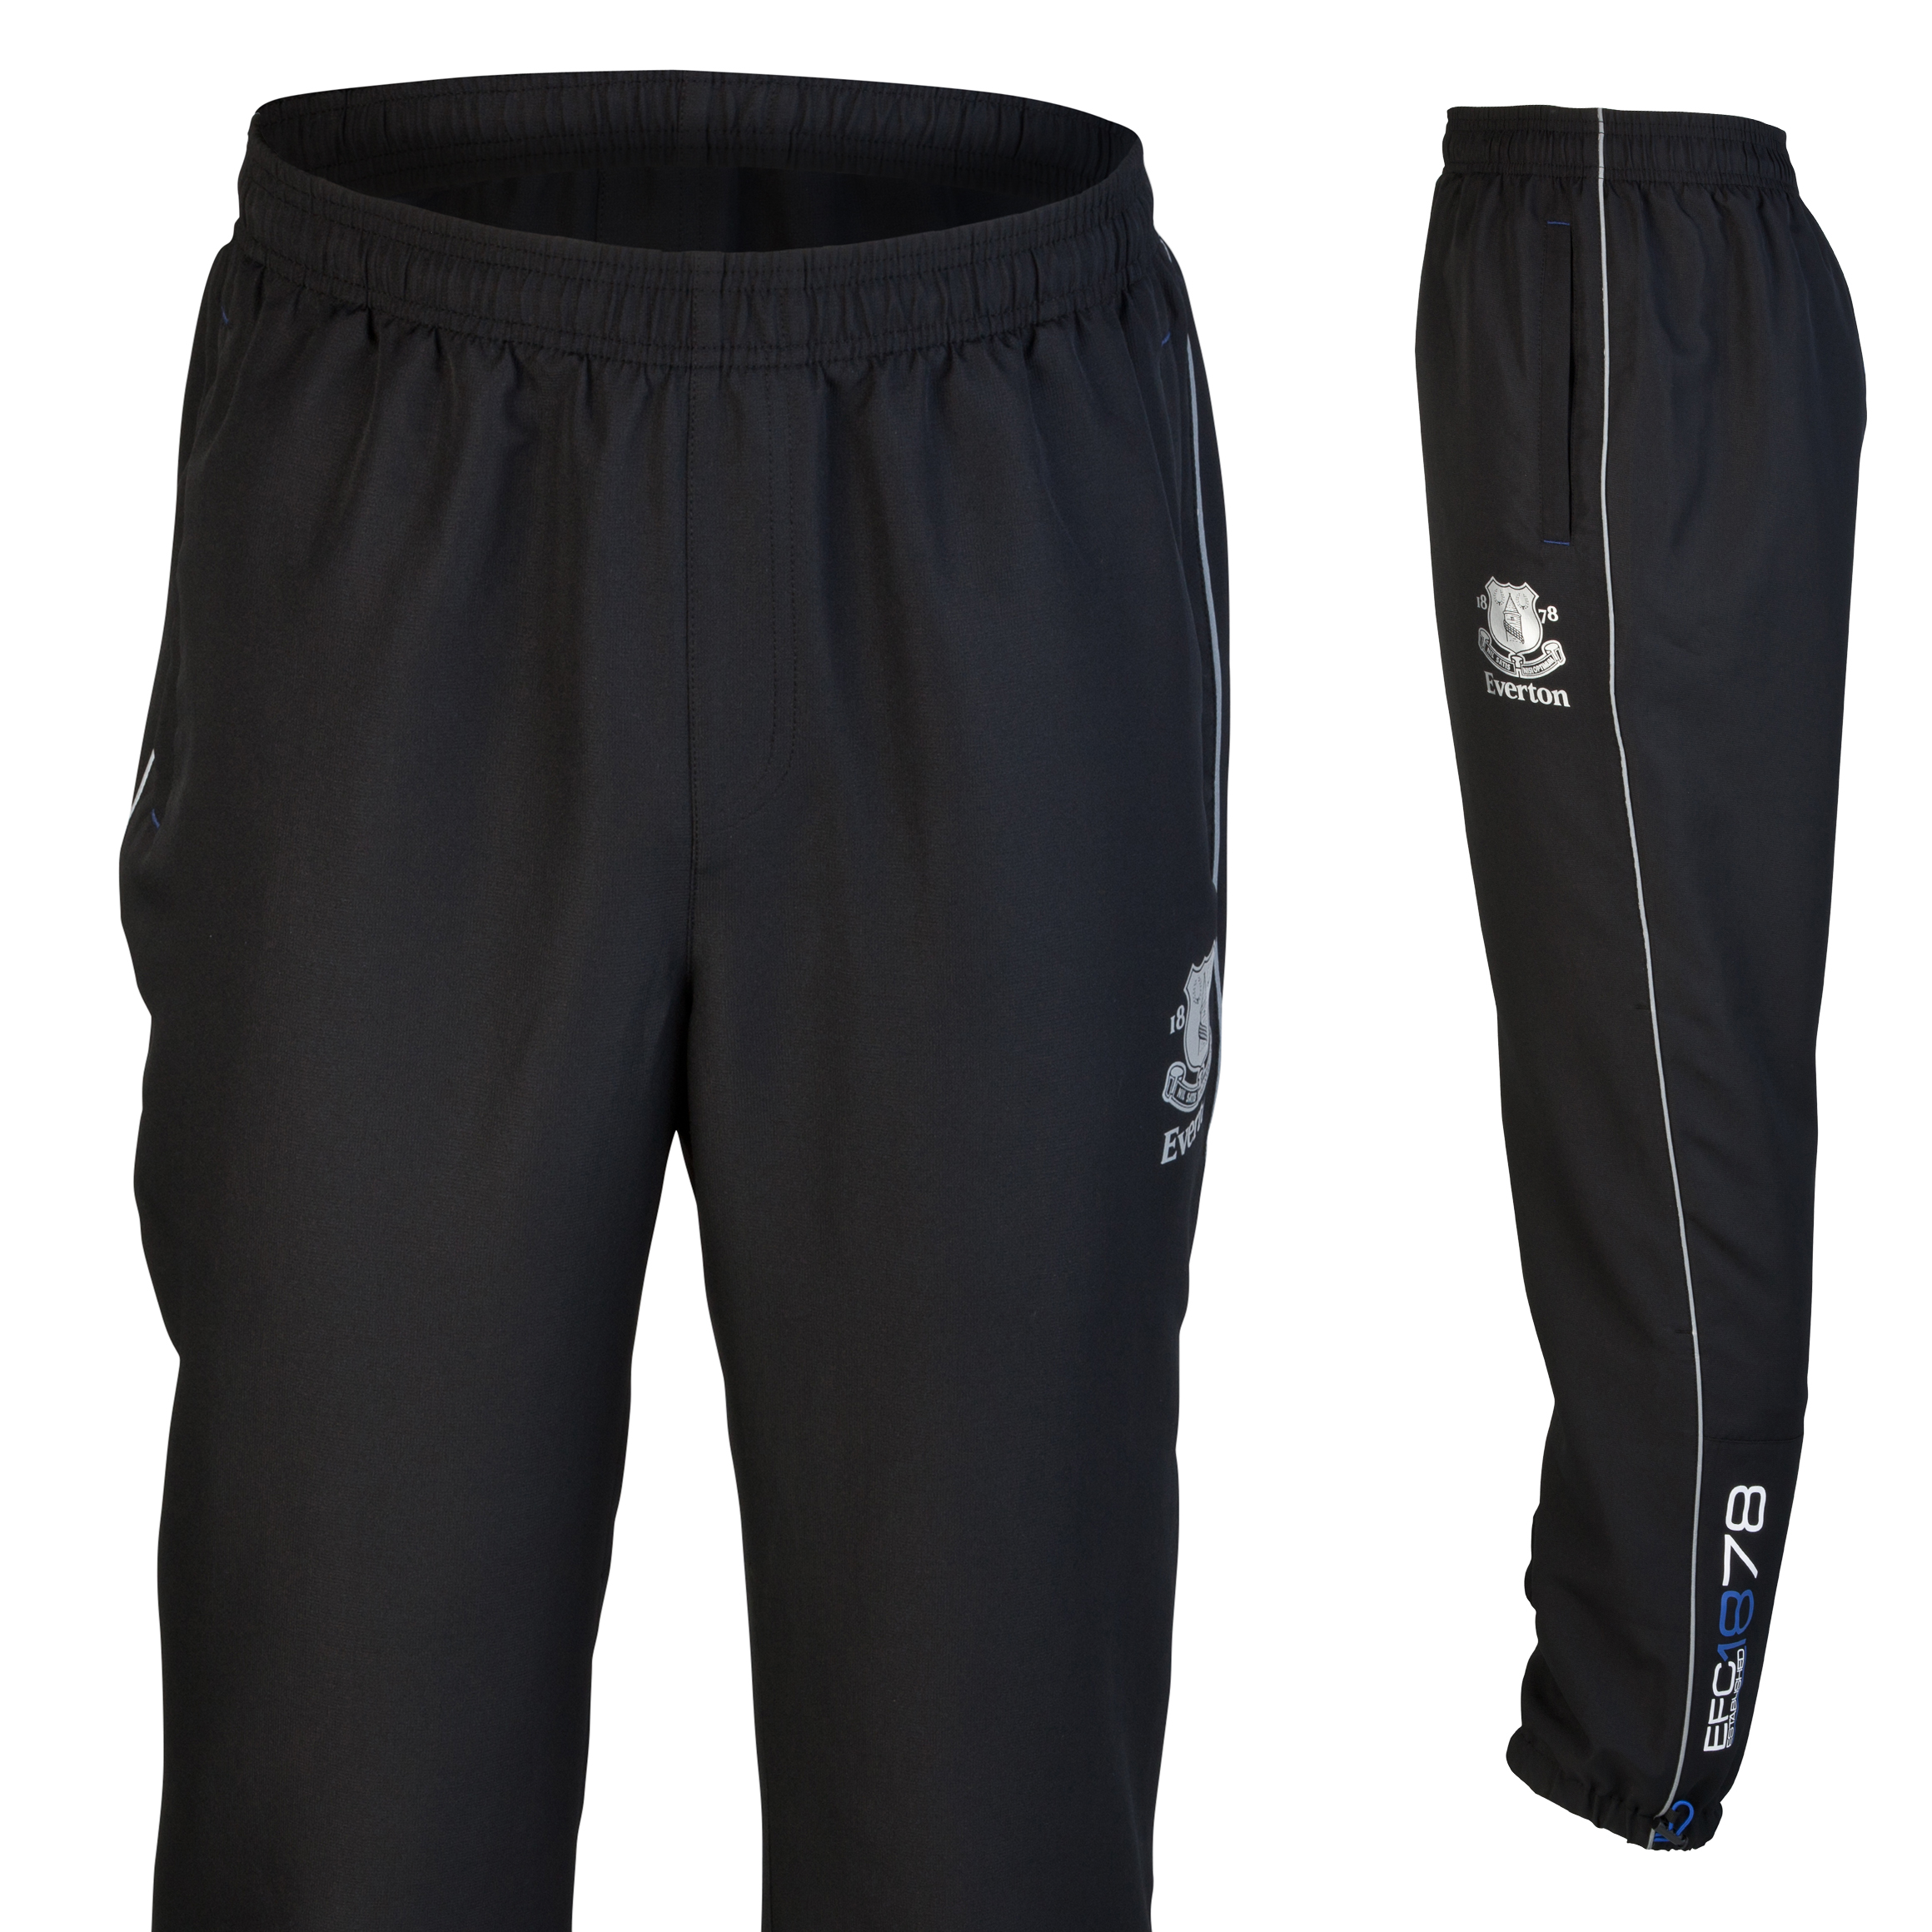 Everton Storm Pant - Black - Older Boys